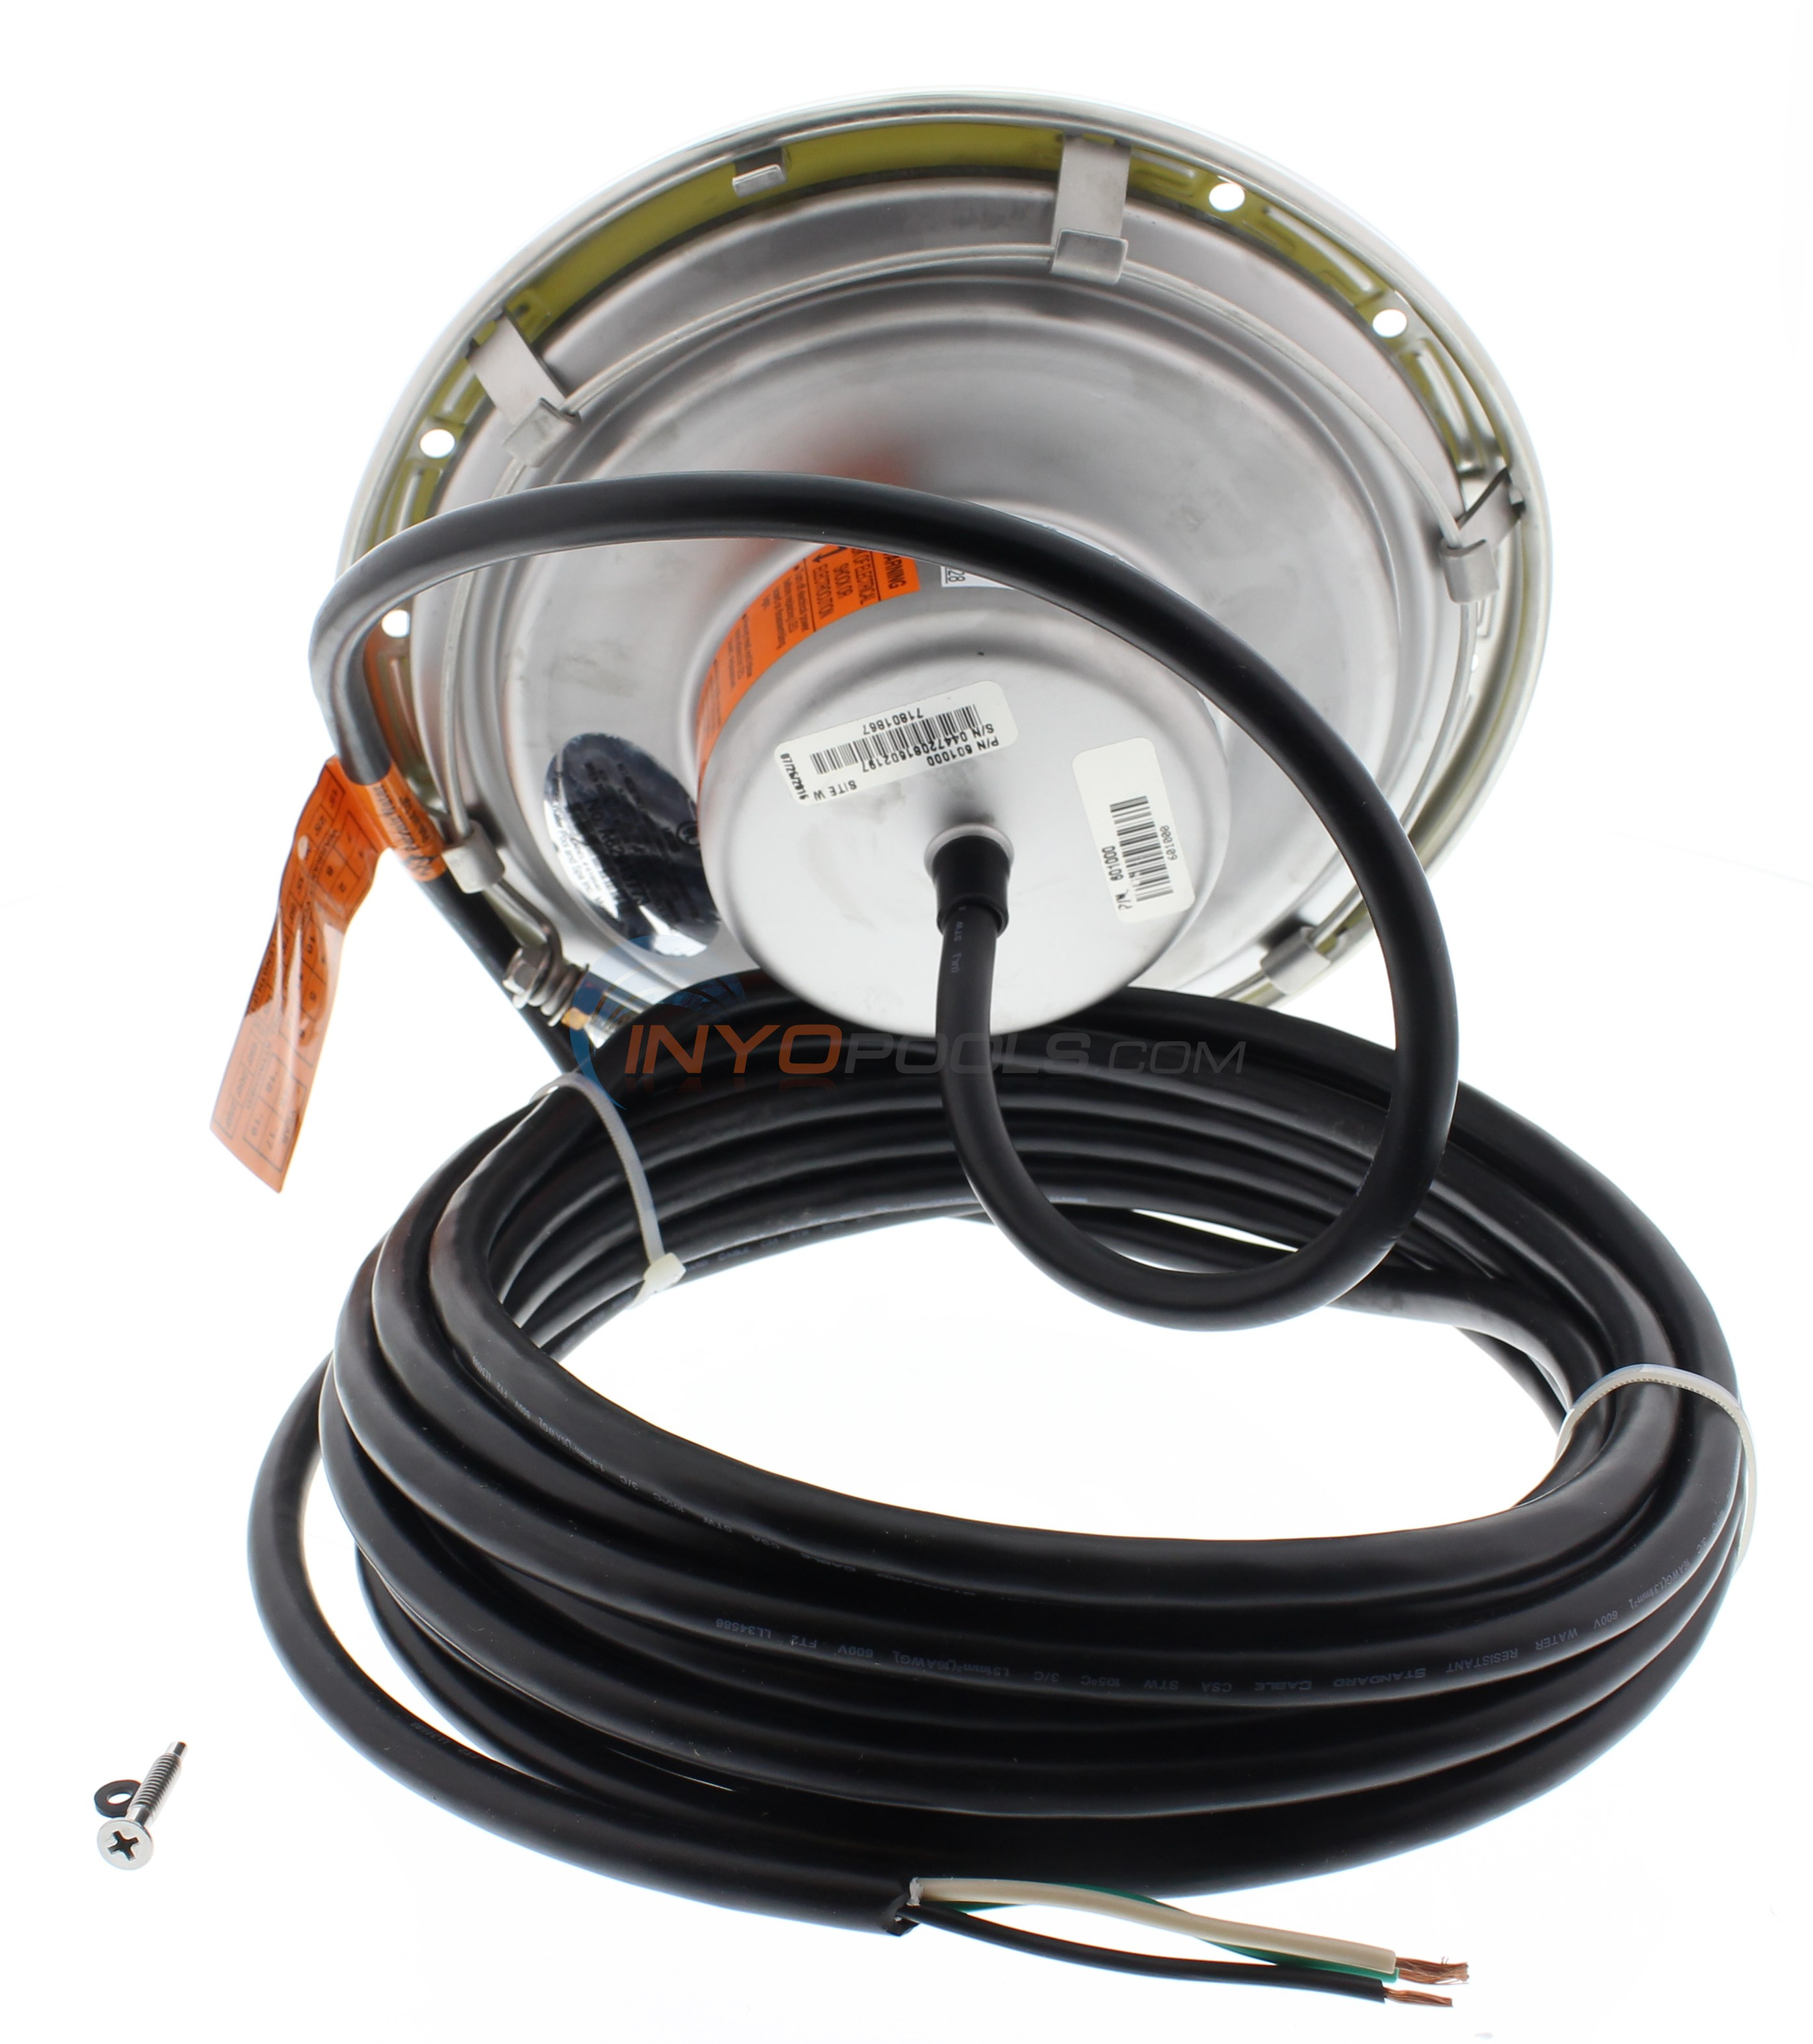 Pentair Led Pool Light Wiring Diagram Wire Center Intellibrite 5g 120v 50 Color 601001 Rh Inyopools Com Swimming